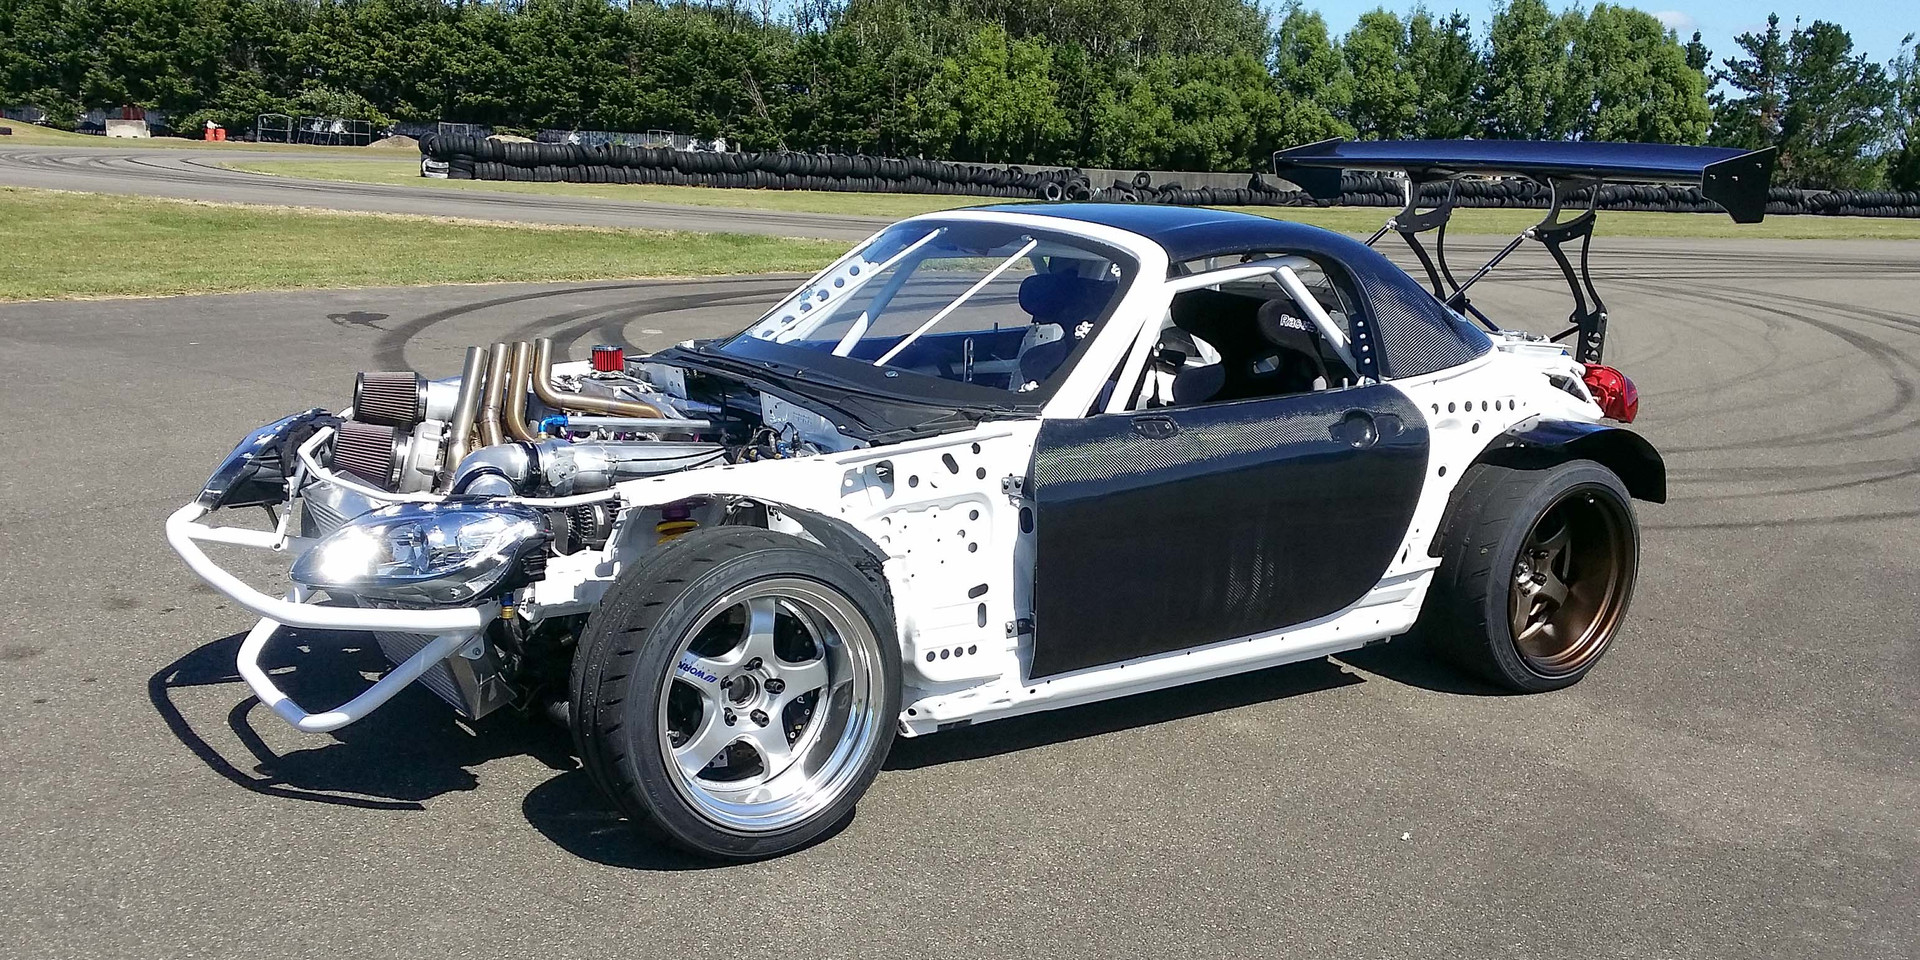 Top secret testing and shake down with Mad Mike before the PPRE built MX5 went to the USA for formula drift